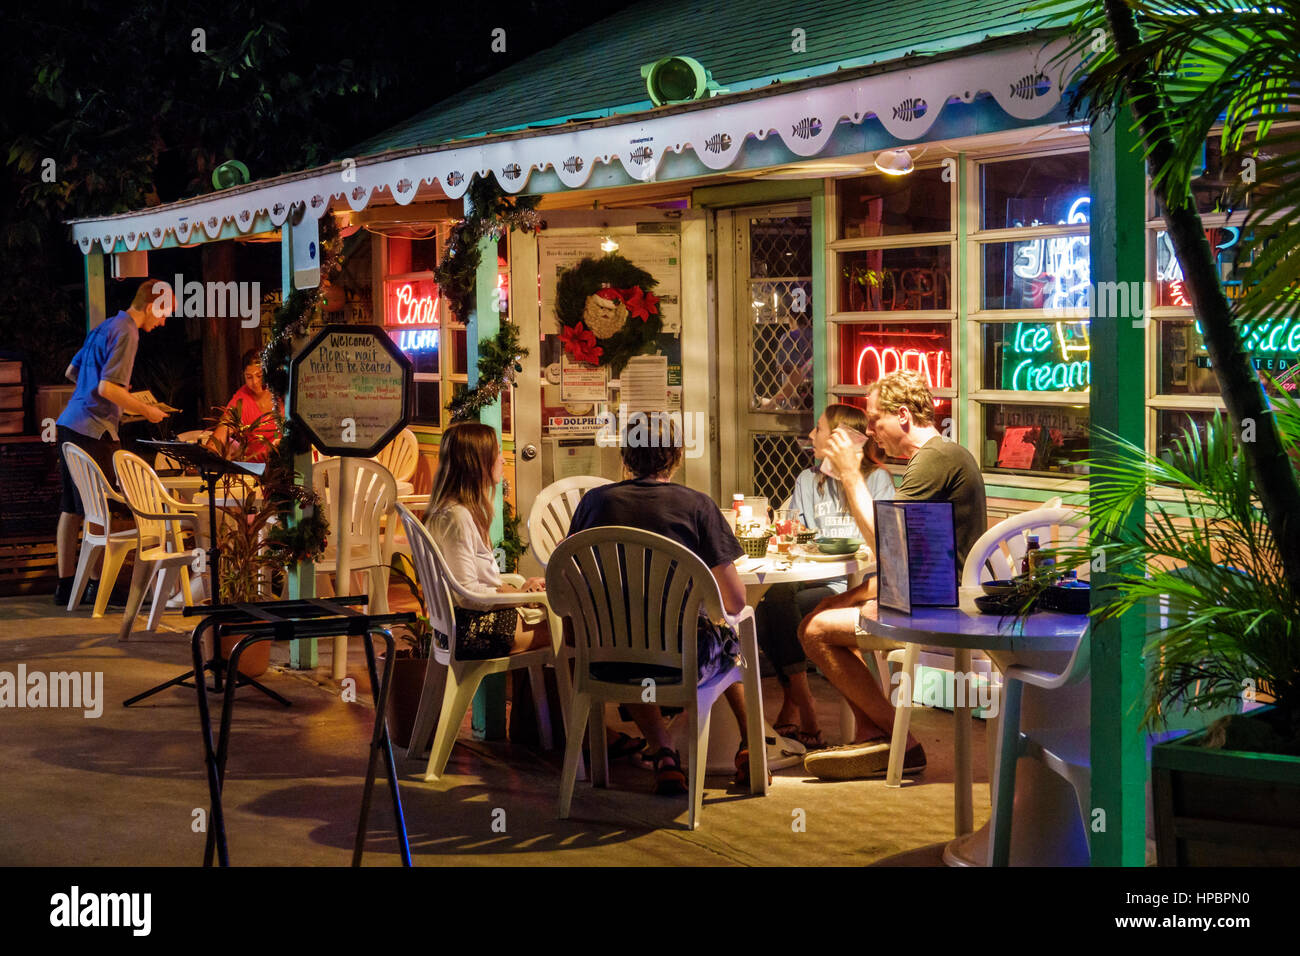 Key Largo Florida Upper Florida Keys Mrs. Mac's Kitchen restaurant seafood dining alfresco table porch man woman - Stock Image